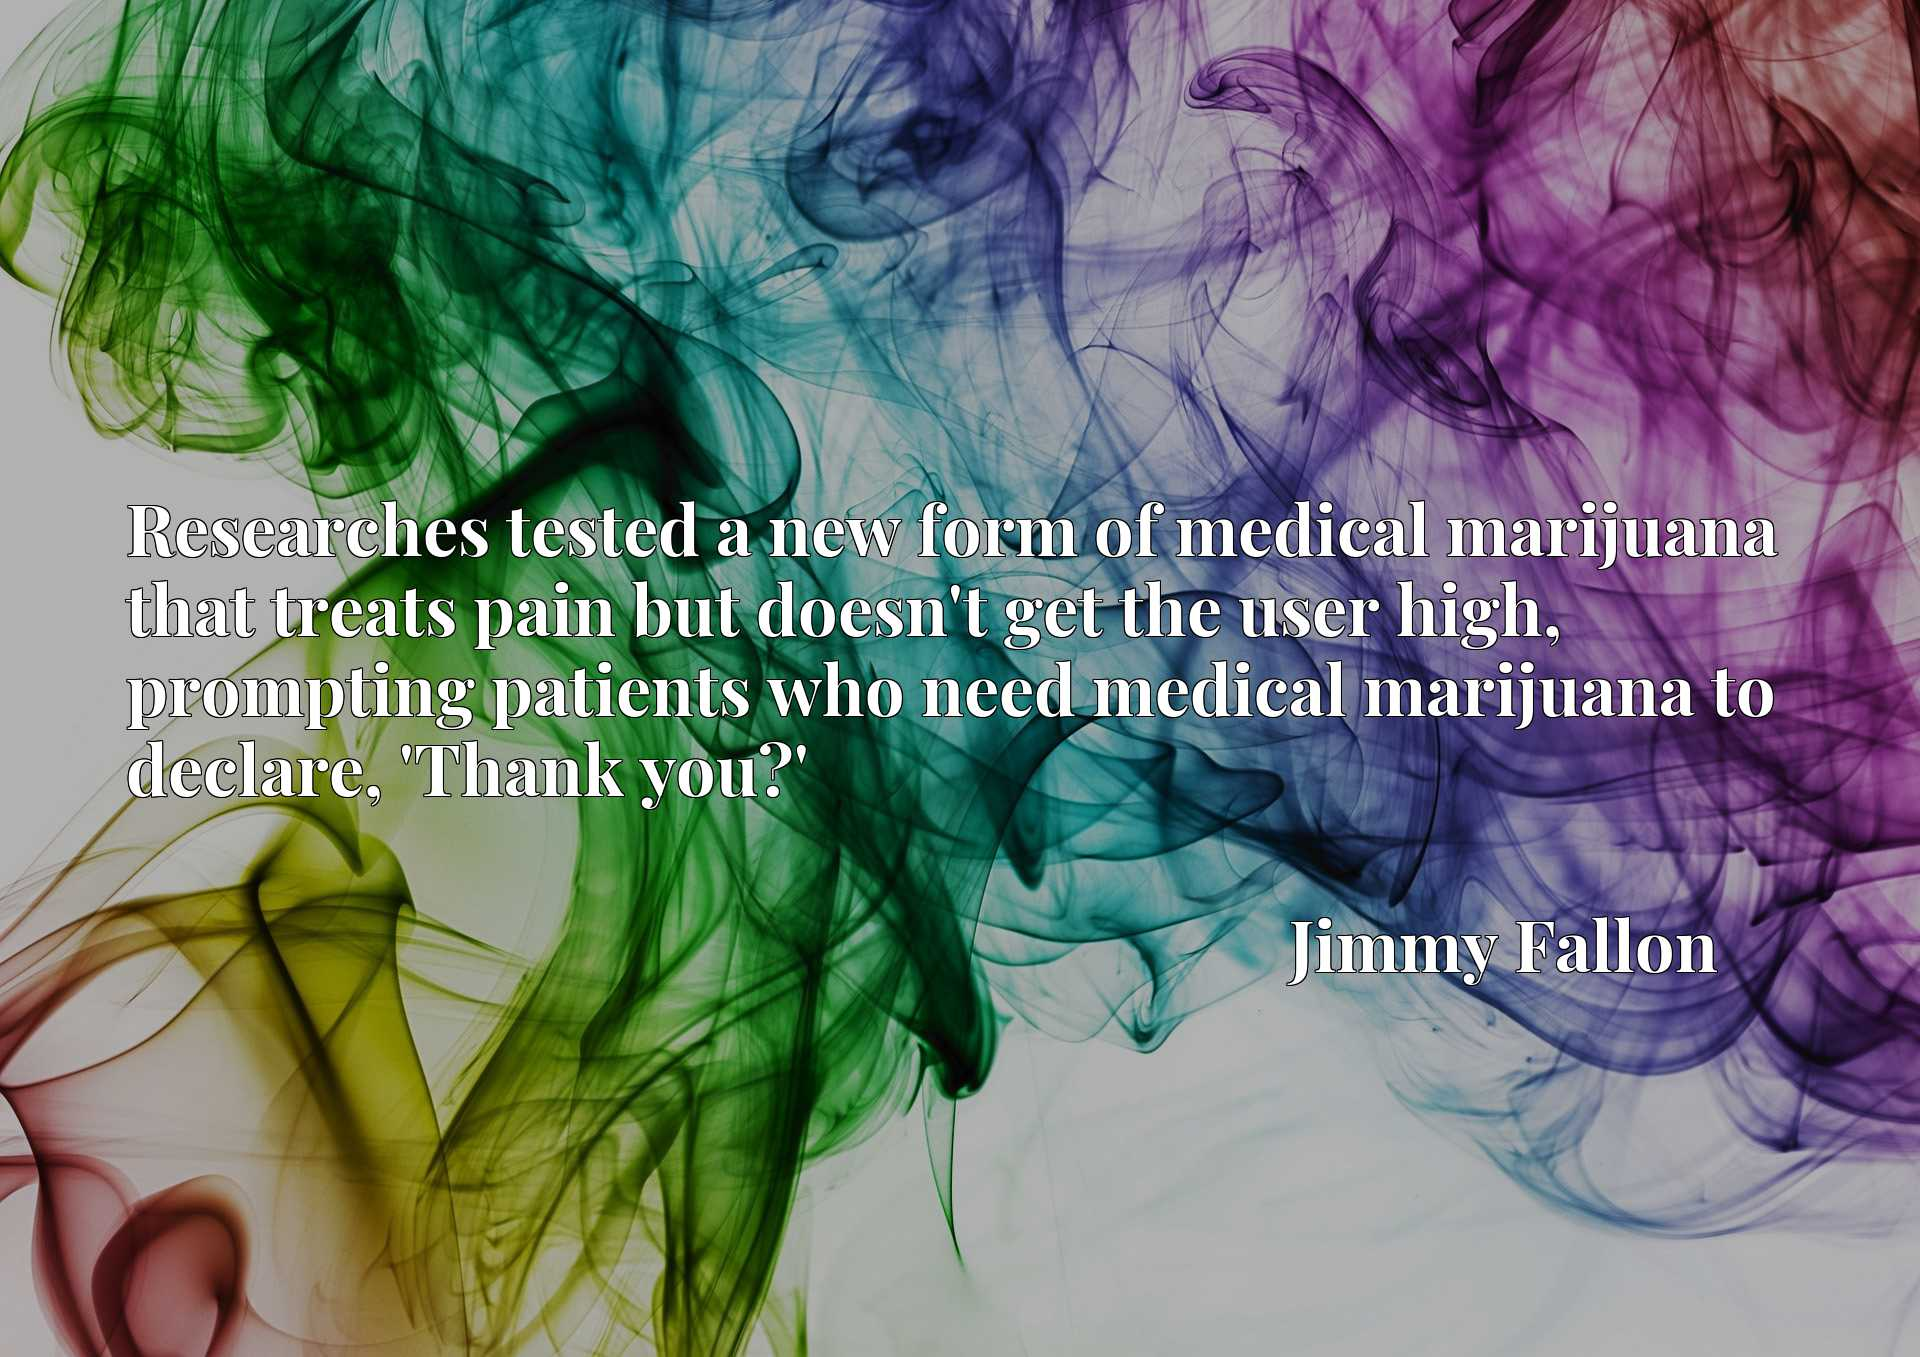 Researches tested a new form of medical marijuana that treats pain but doesn't get the user high, prompting patients who need medical marijuana to declare, 'Thank you?'